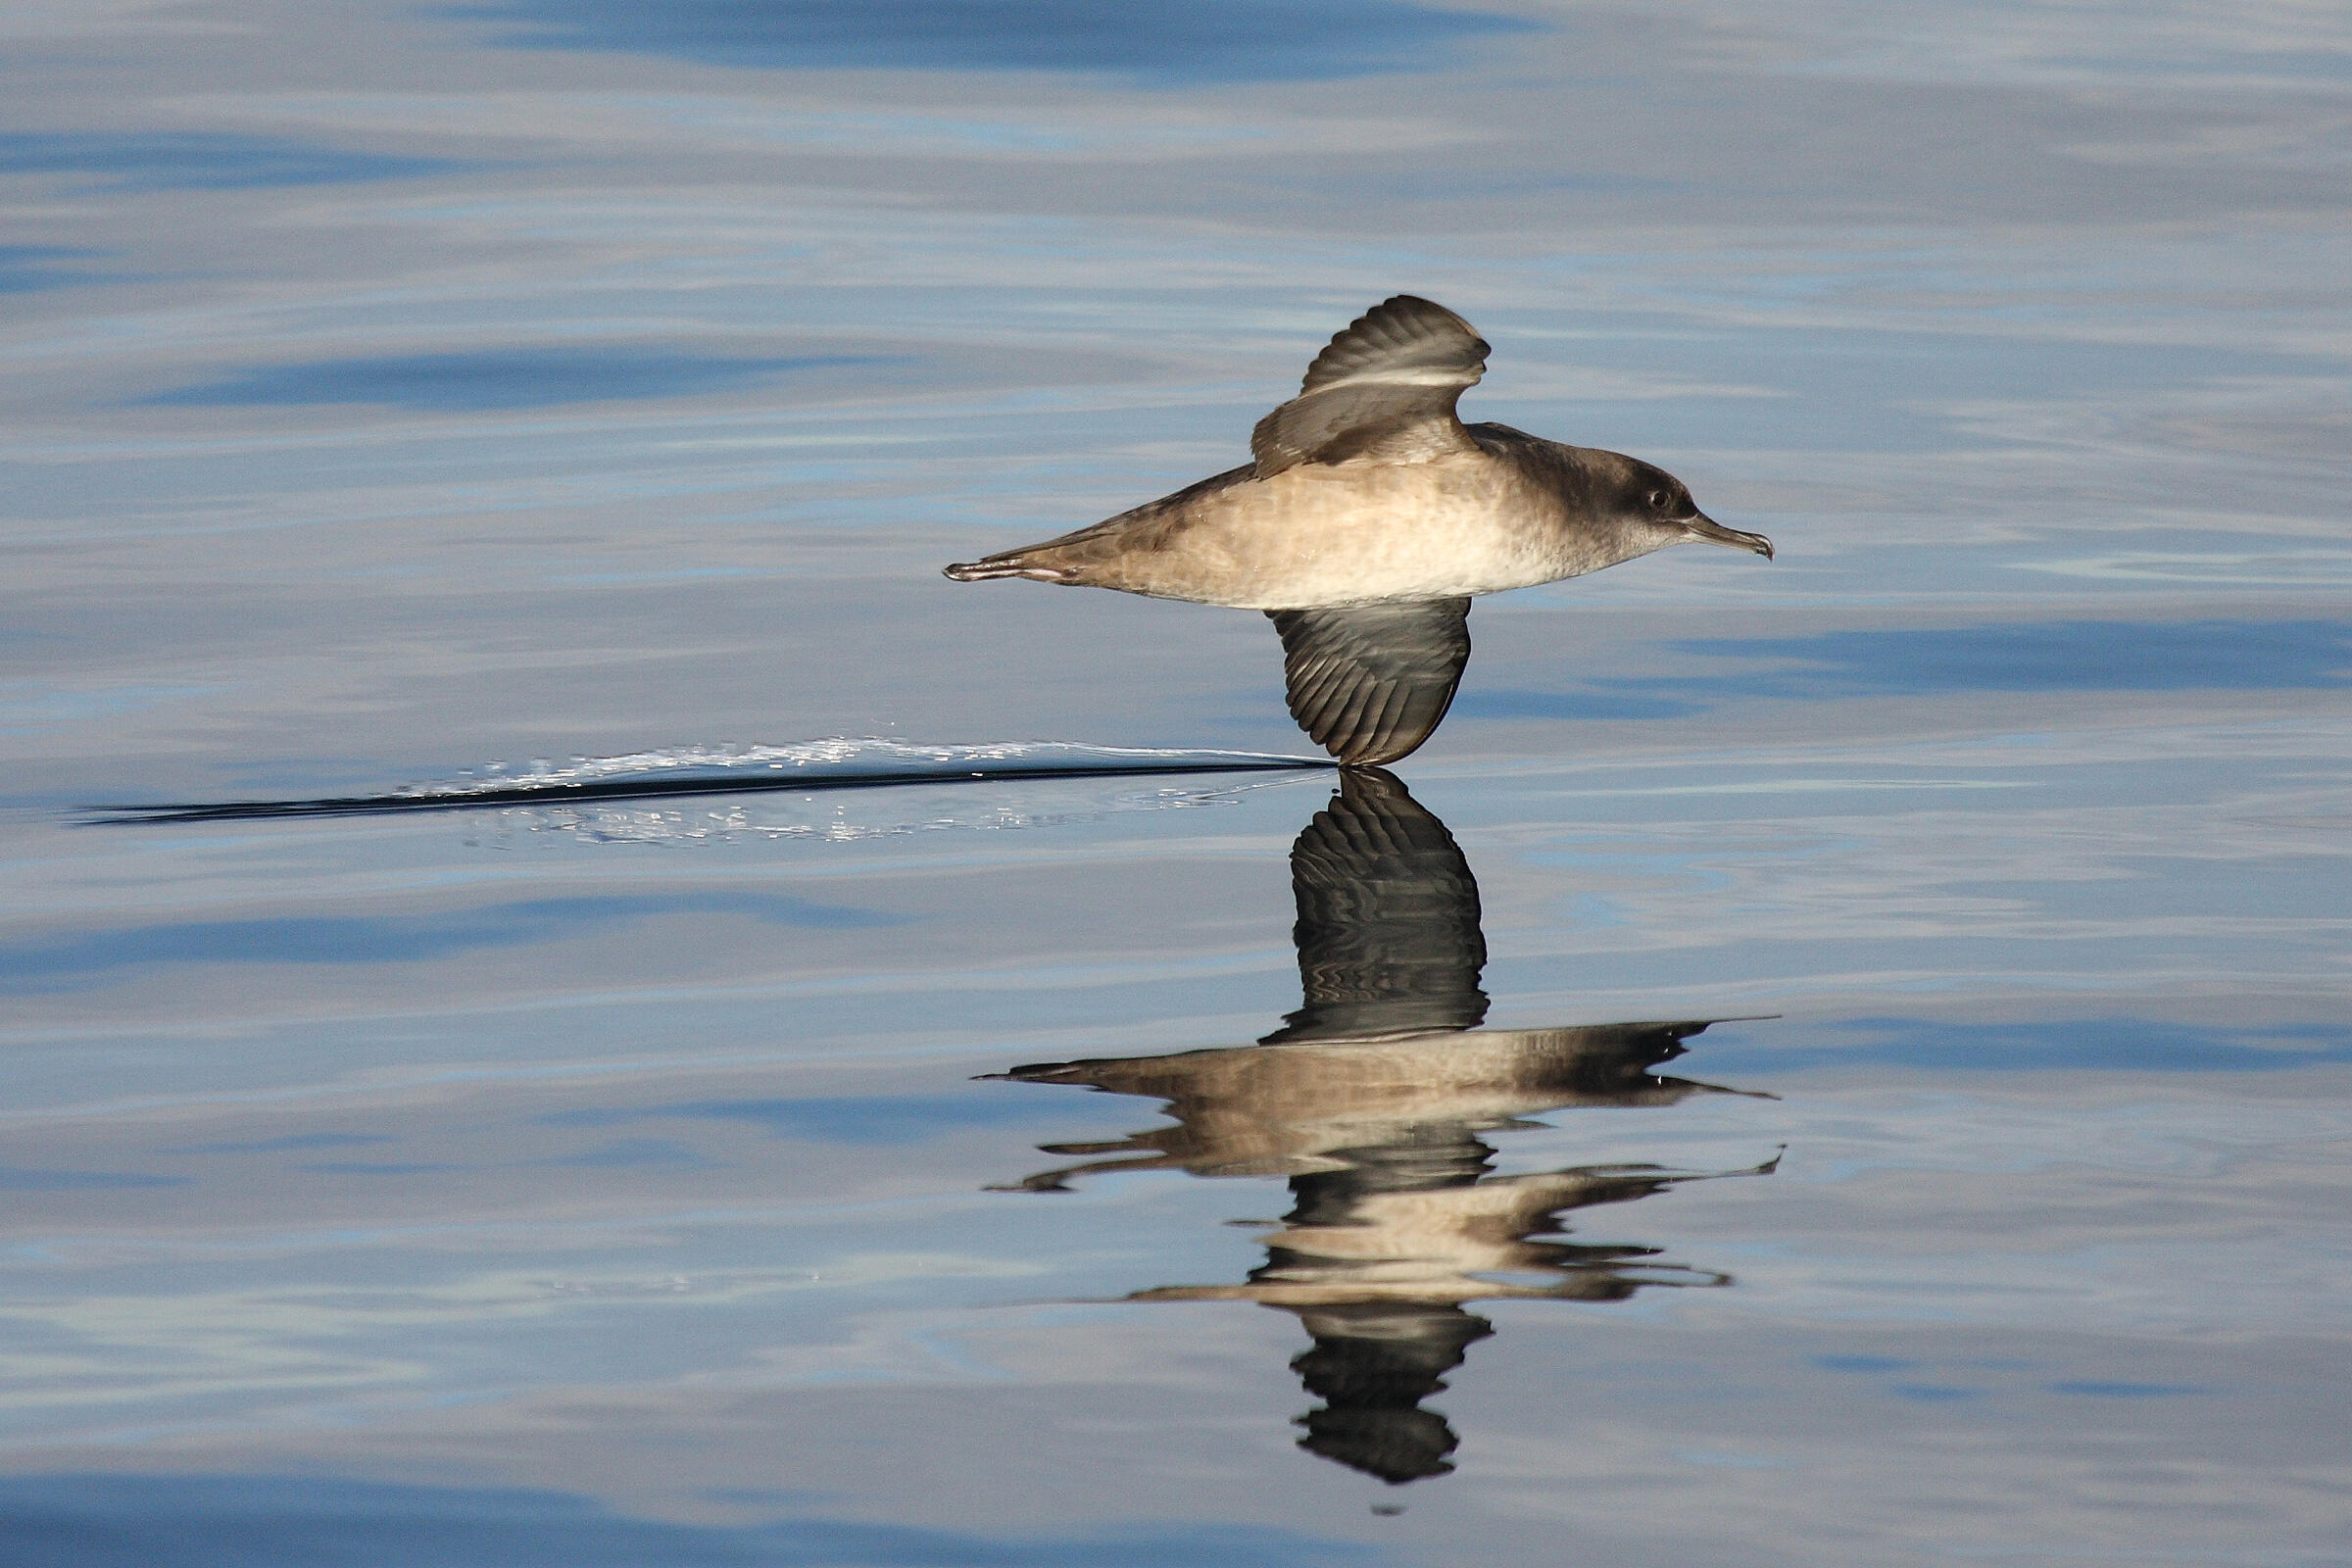 The Balearic Shearwater, Europe's most endangered seabird, is also affected by light pollution. Beneharo Rodríguez